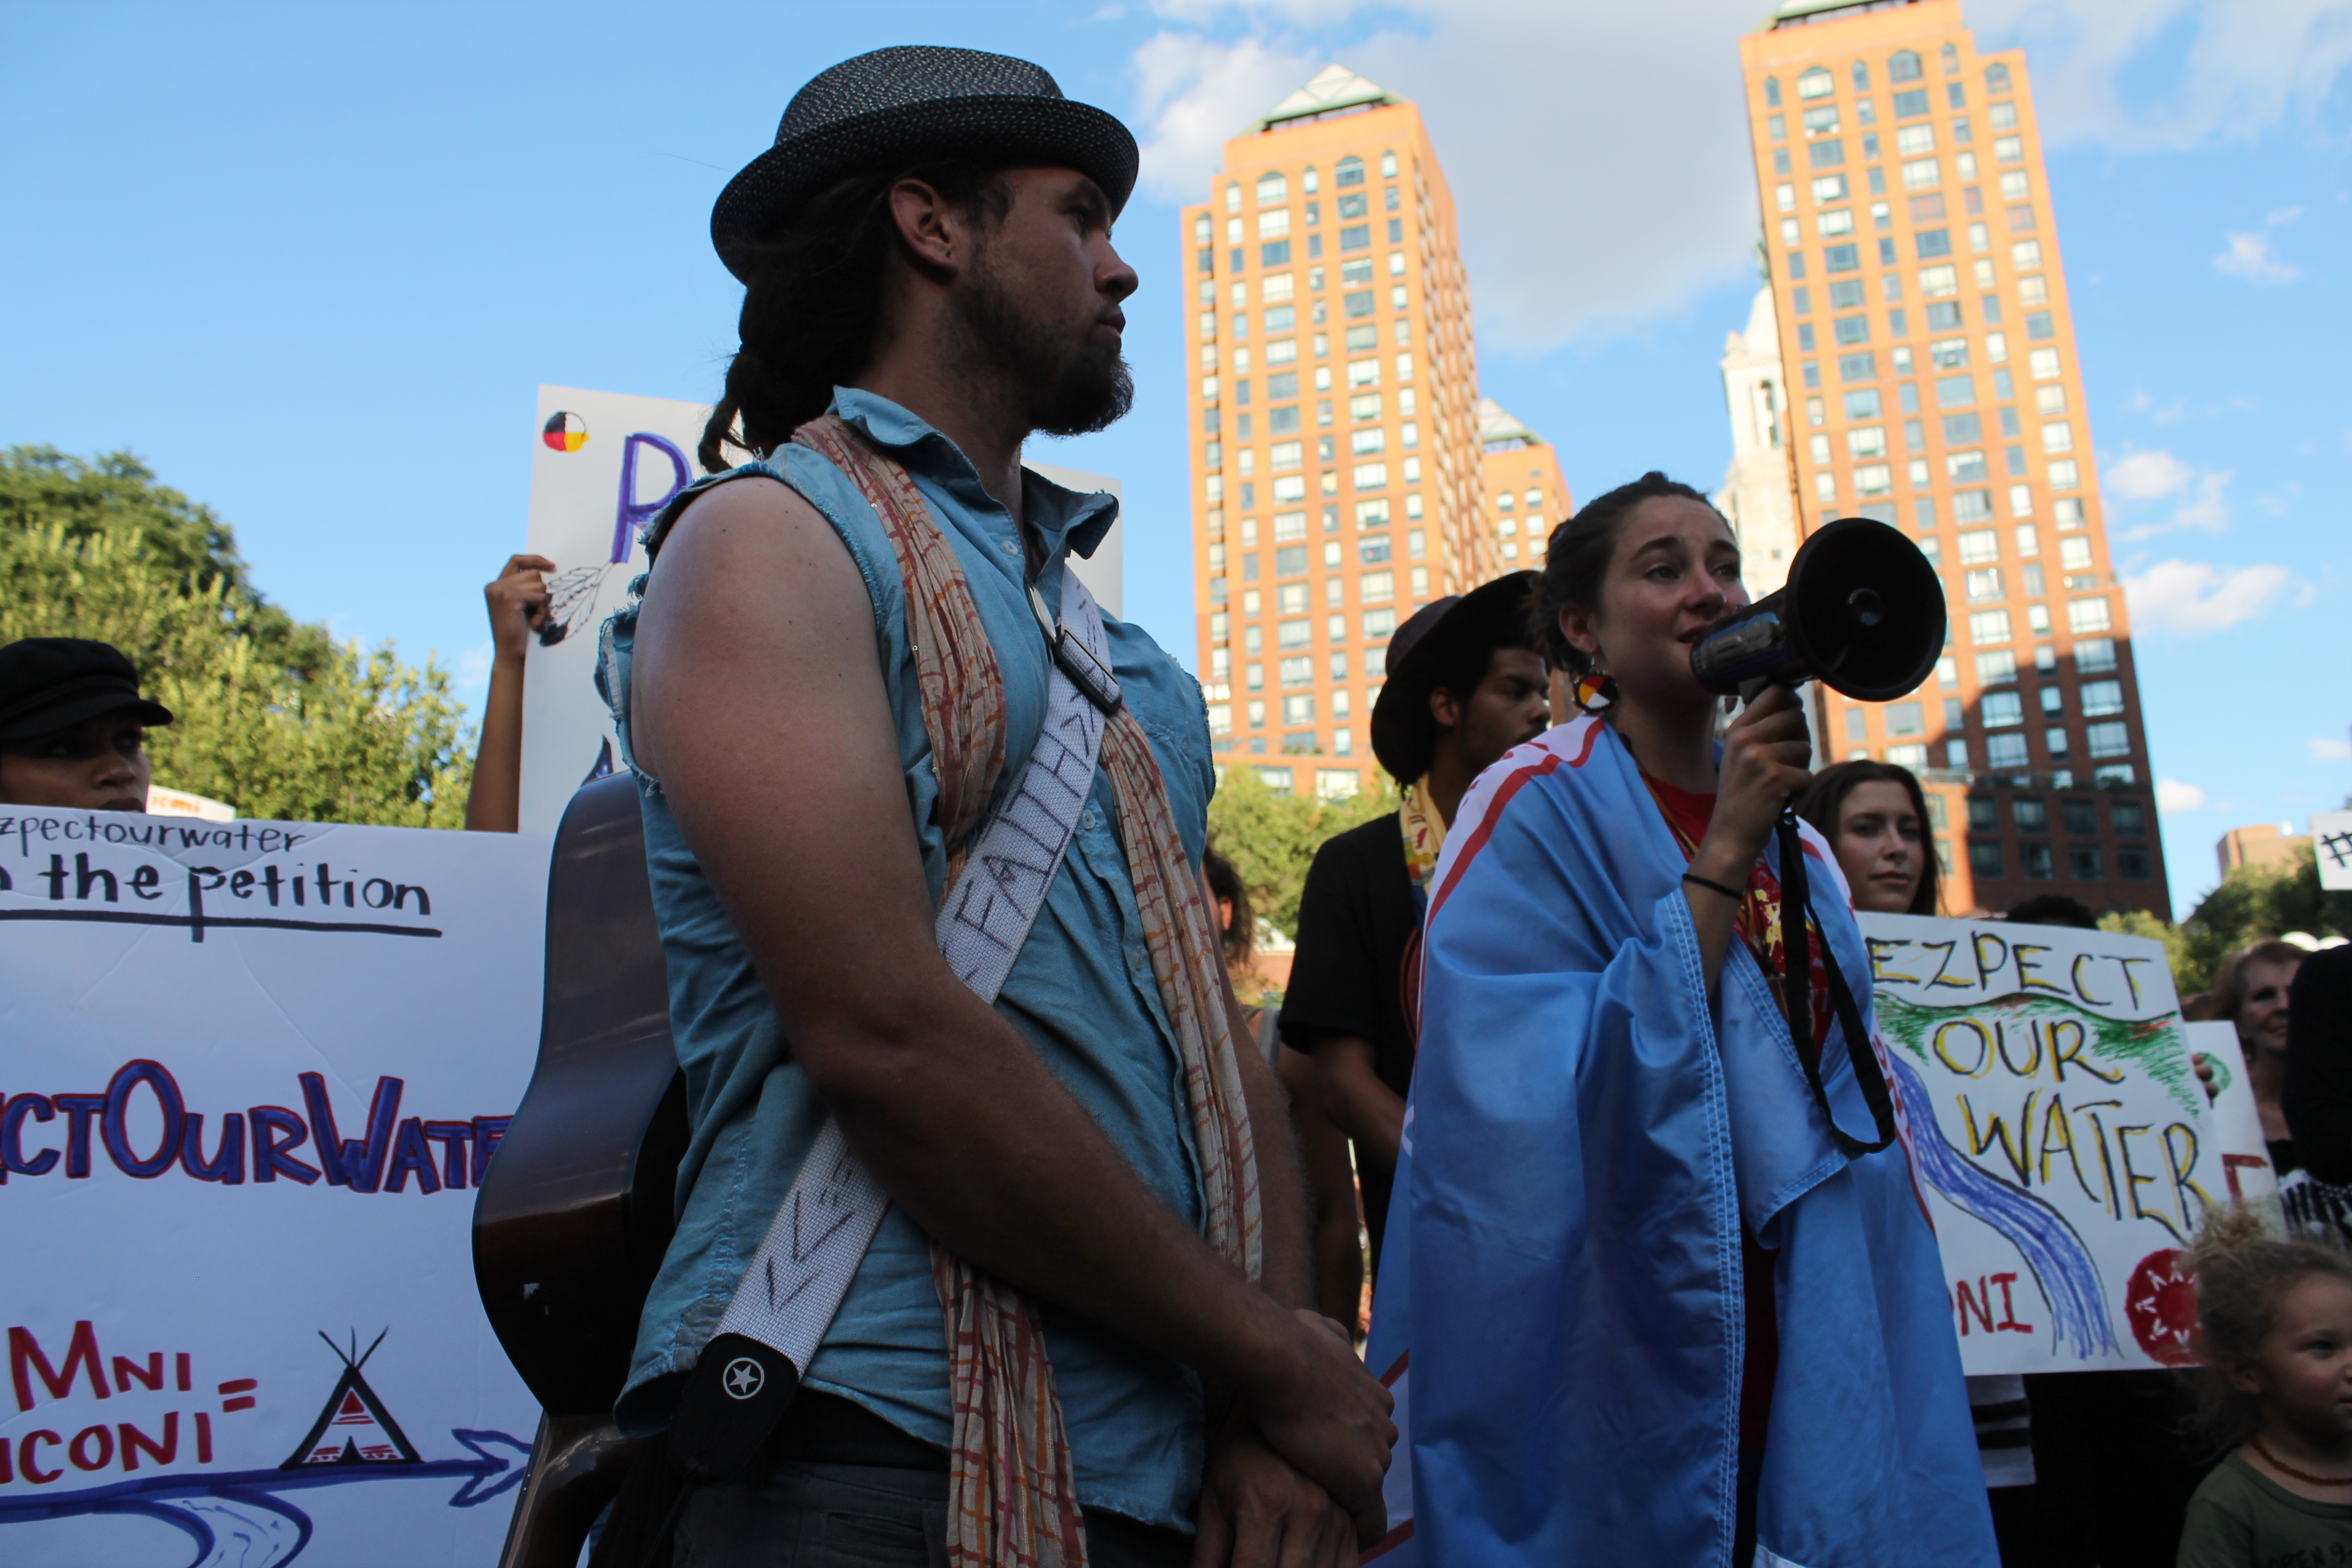 Activists in New York's Union Square rally in support of Native-Americans battling the controversial Dakota Access Pipeline.